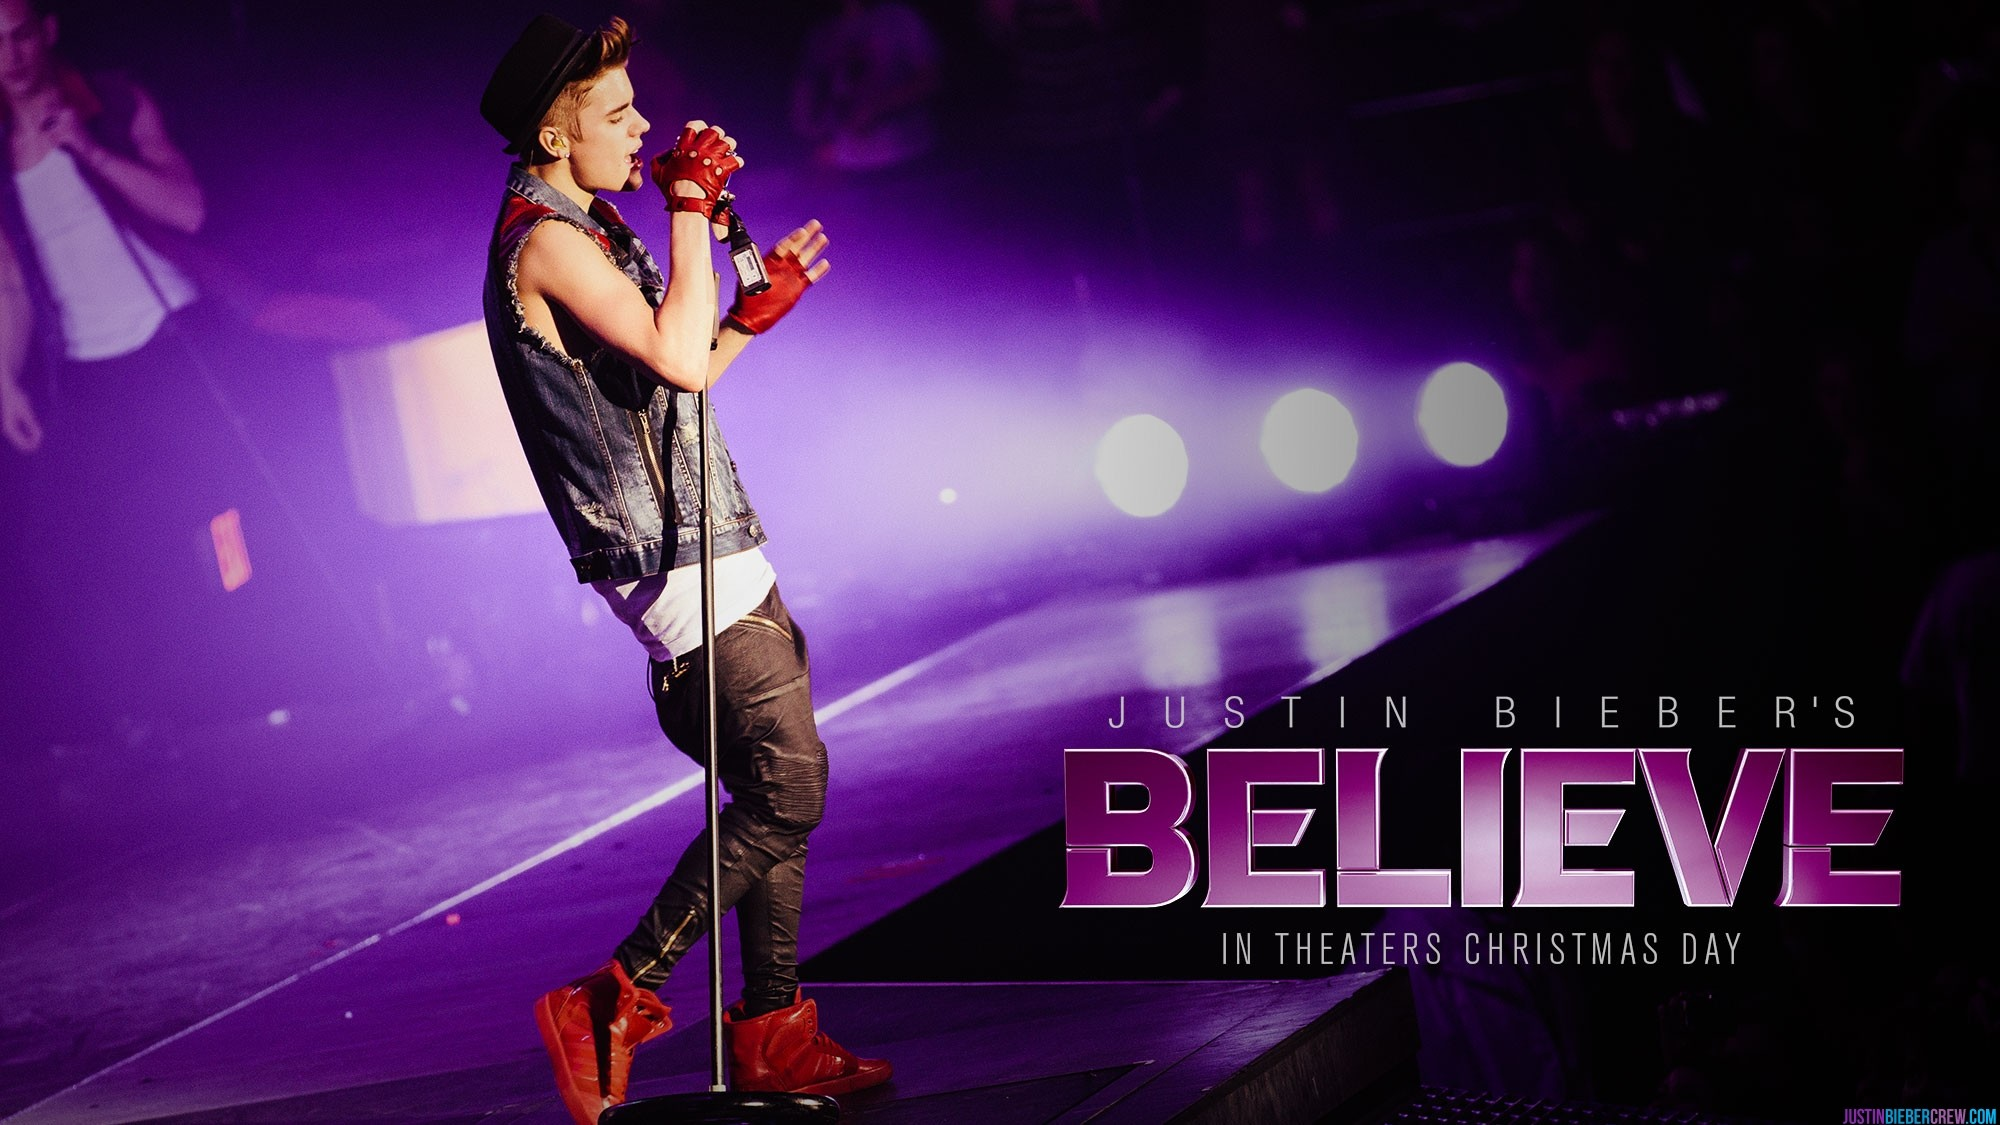 2000x1125 Justin Bieber's Believe 2013 wallpapers (56 Wallpapers)